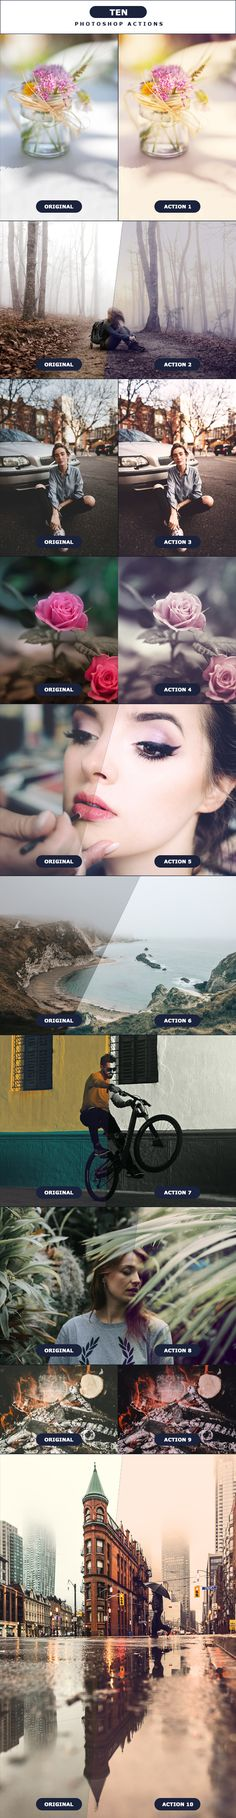 TEN - #Photoshop Actions - #Photo Effects #Actions Download here:  https://graphicriver.net/item/ten-photoshop-actions/19531388?ref=alena994